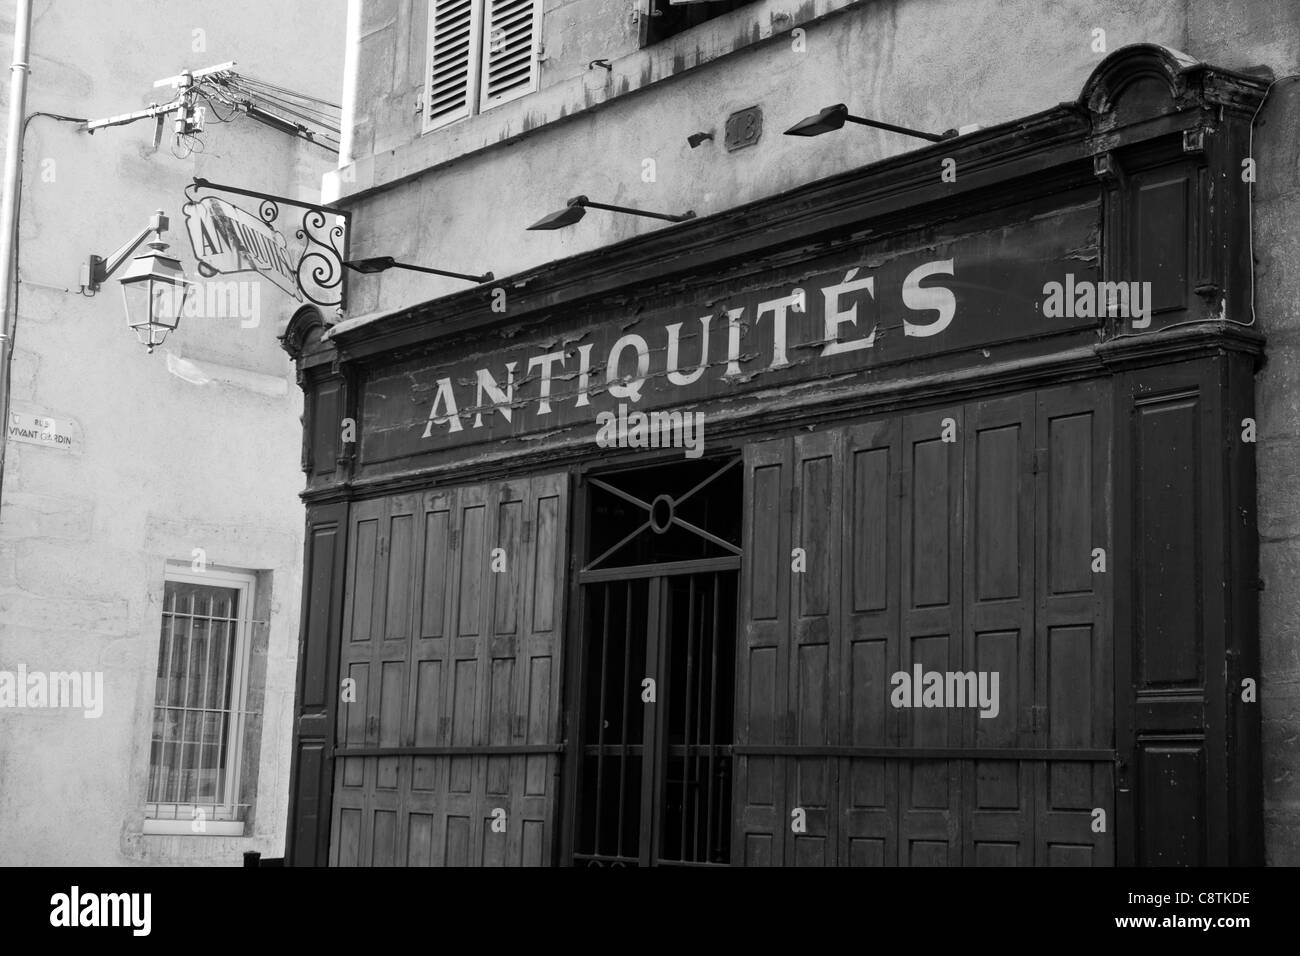 Antique shop, Beaune, Burgundy, France - Stock Image